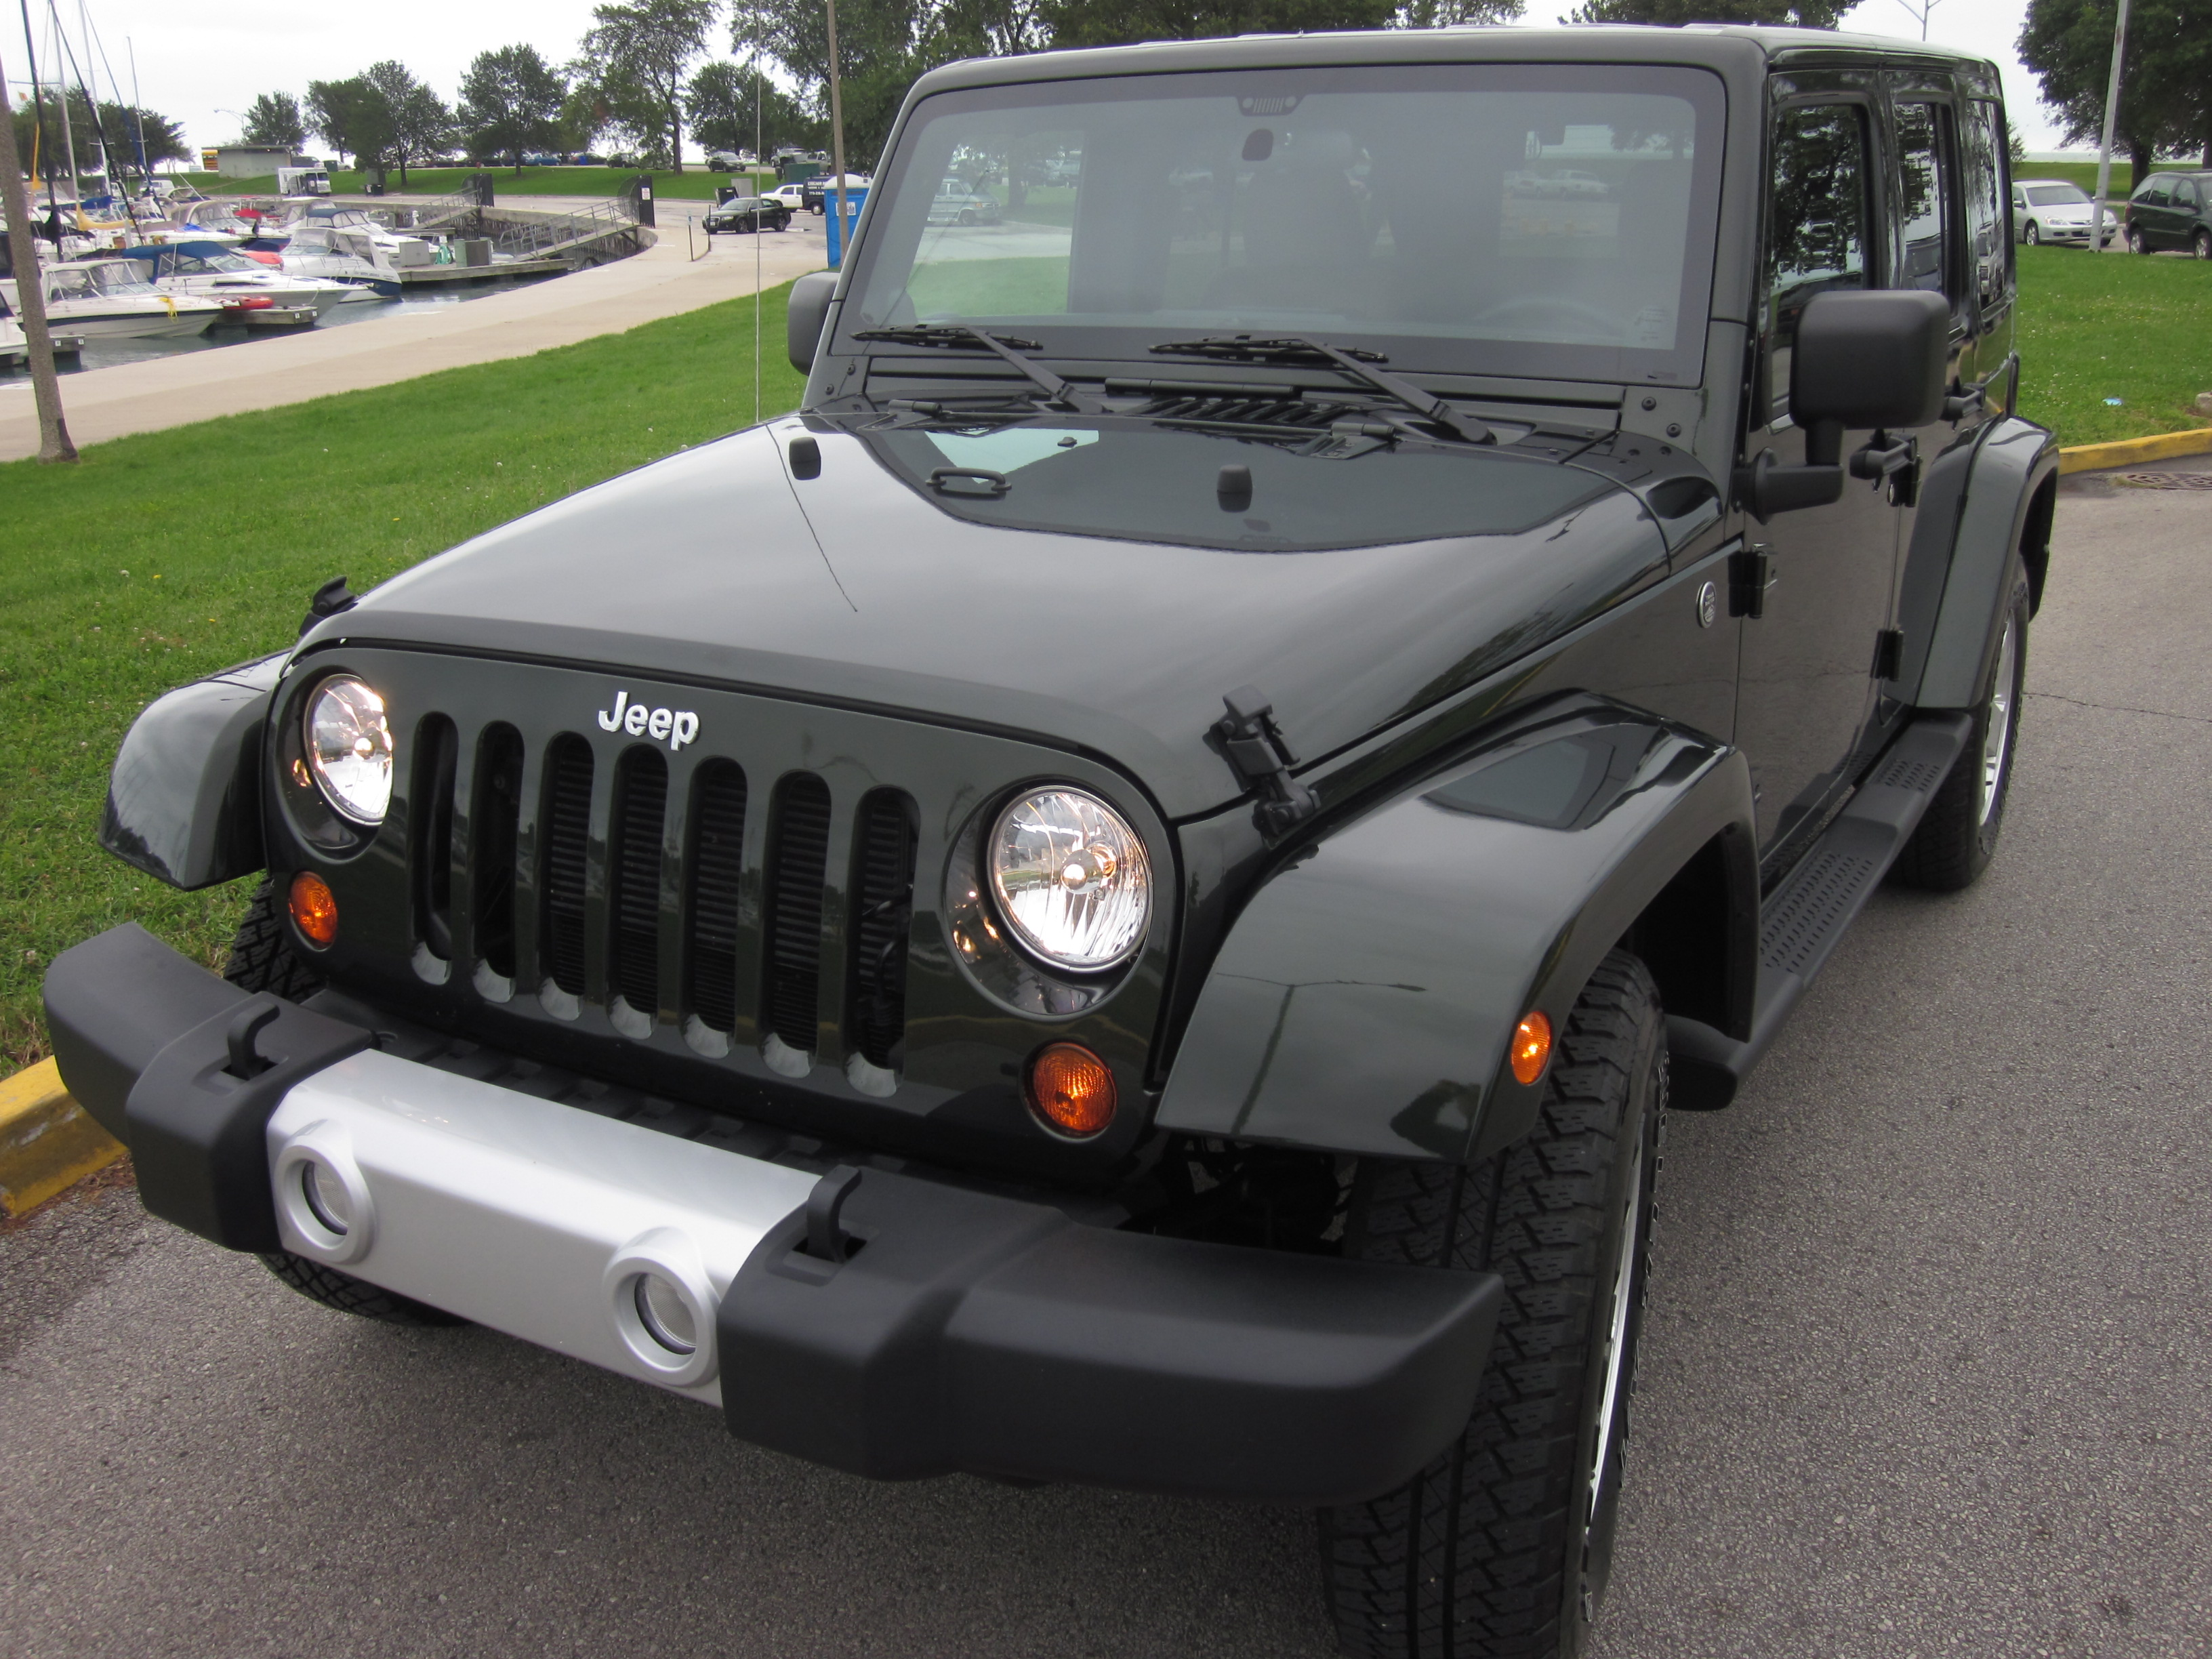 2012 Jeep Wrangler Unlimited (select to view enlarged photo)